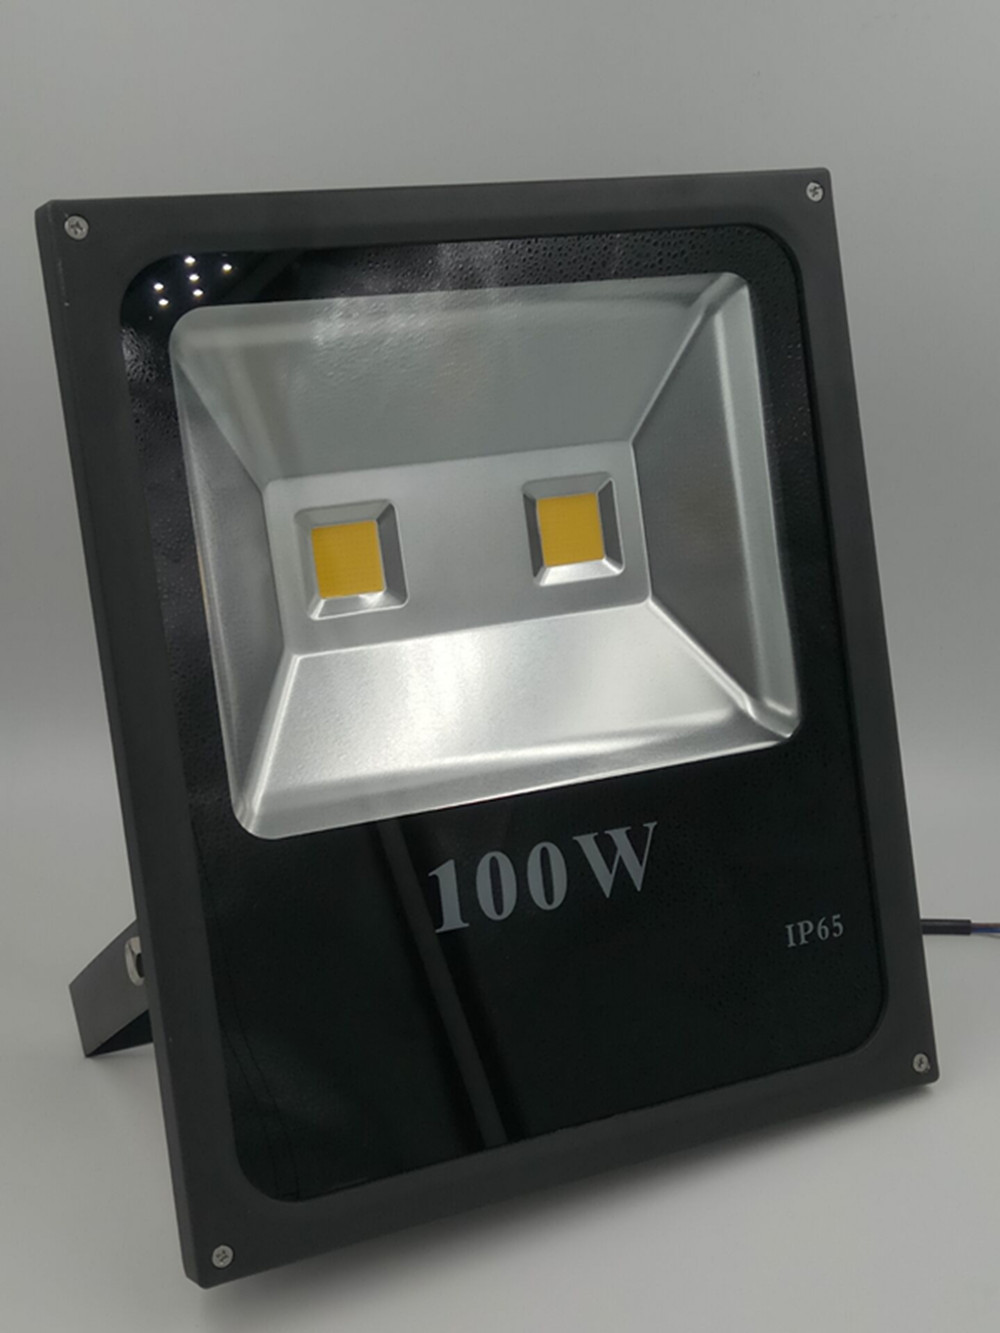 Ultrathin LED Flood Light 100w LED Floodlight IP65 Waterproof AC85V-265V Warm/cold white LED Spotlight outdoor lighting ac220v led flood light 30w 50w 70w 100w 150w reflector led floodlight waterproof ip65 spotlight warm cold white outdoor lighting